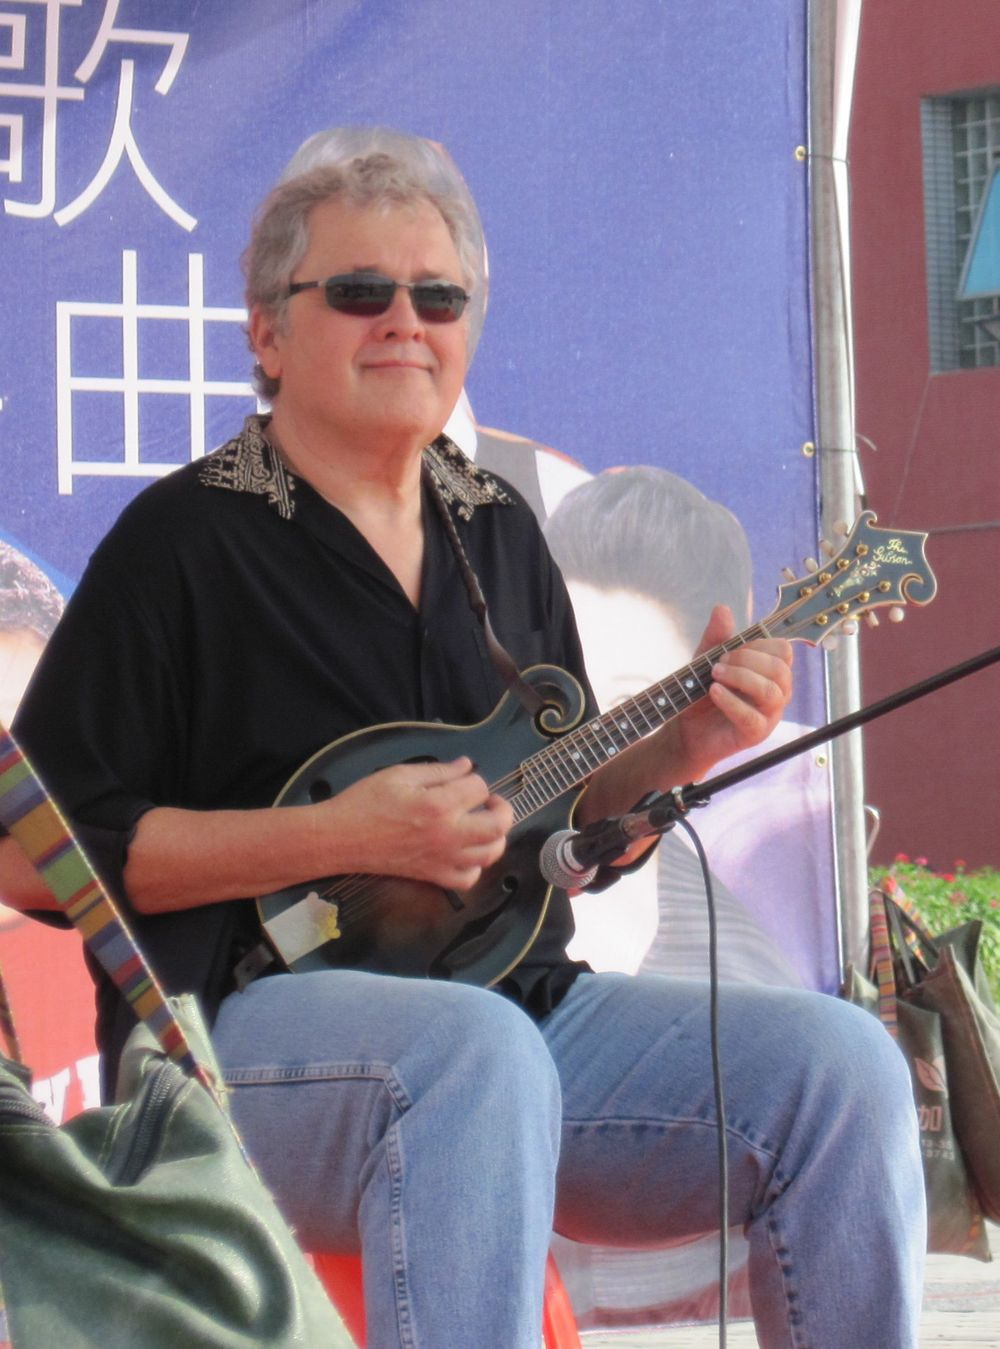 Tony performs in Kaoshuing, Taiwan Photo by Atamo Shakti